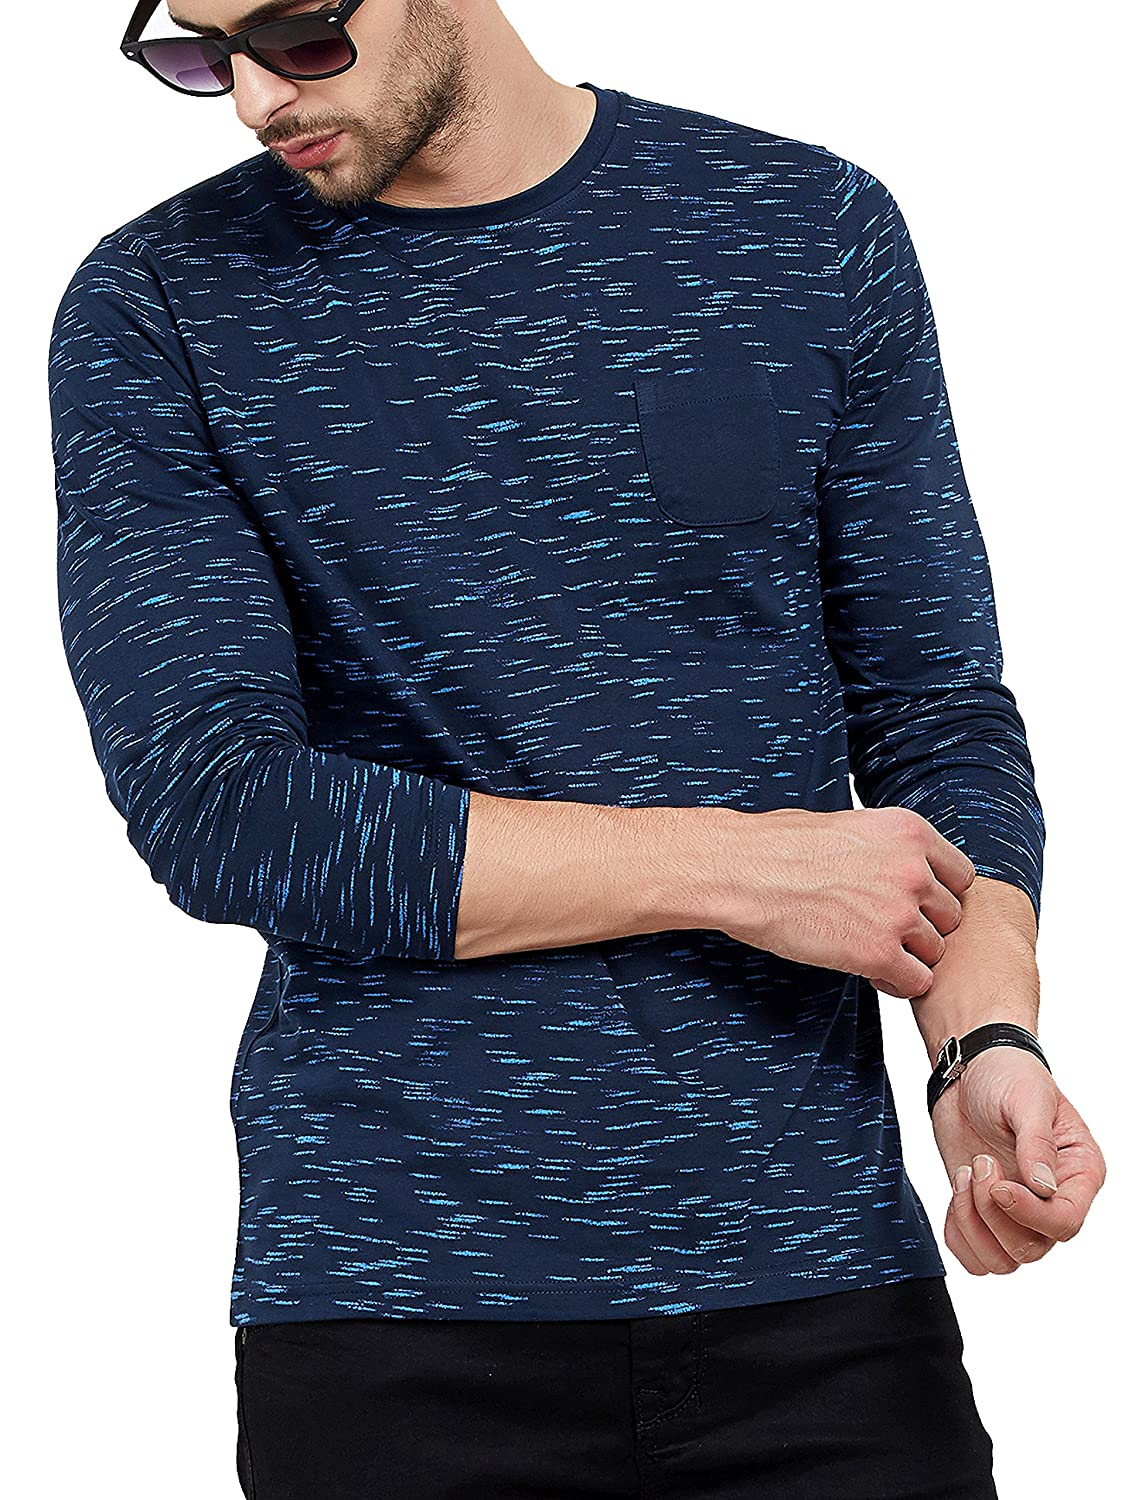 https://www.saicustom.com/2019/03/maniac-mens-fullsleeve-round-neck-all.html